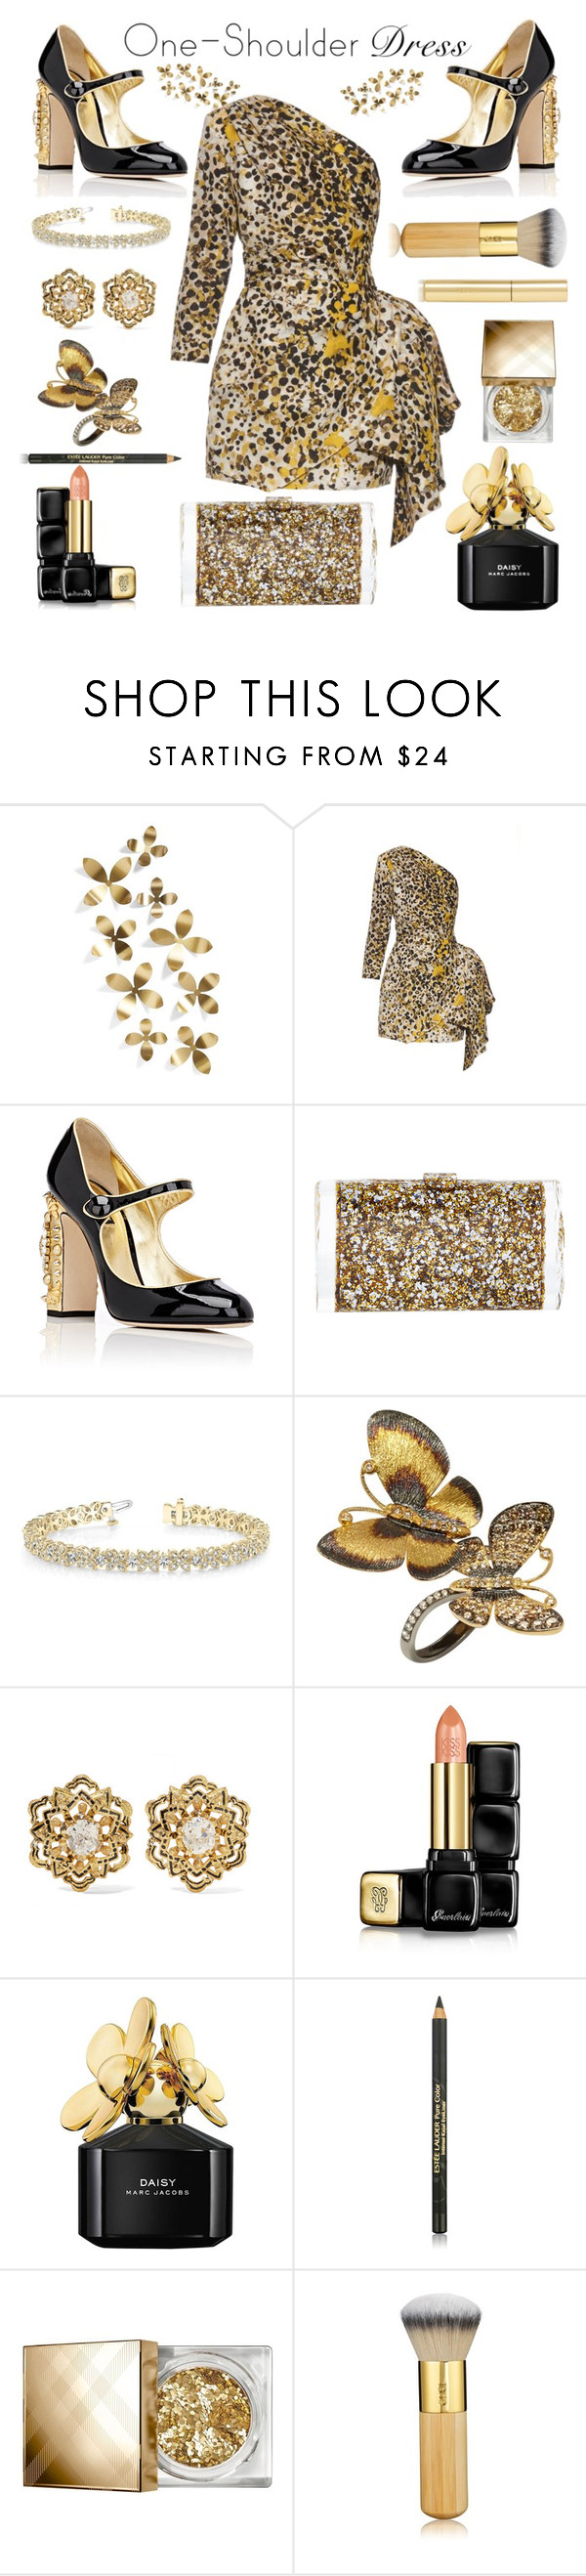 """One-shoulder"" by sneky ❤ liked on Polyvore featuring Umbra, Roberto Cavalli, Dolce&Gabbana, Edie Parker, Allurez, Annoushka, Fred Leighton, Guerlain, Marc Jacobs and Estée Lauder"